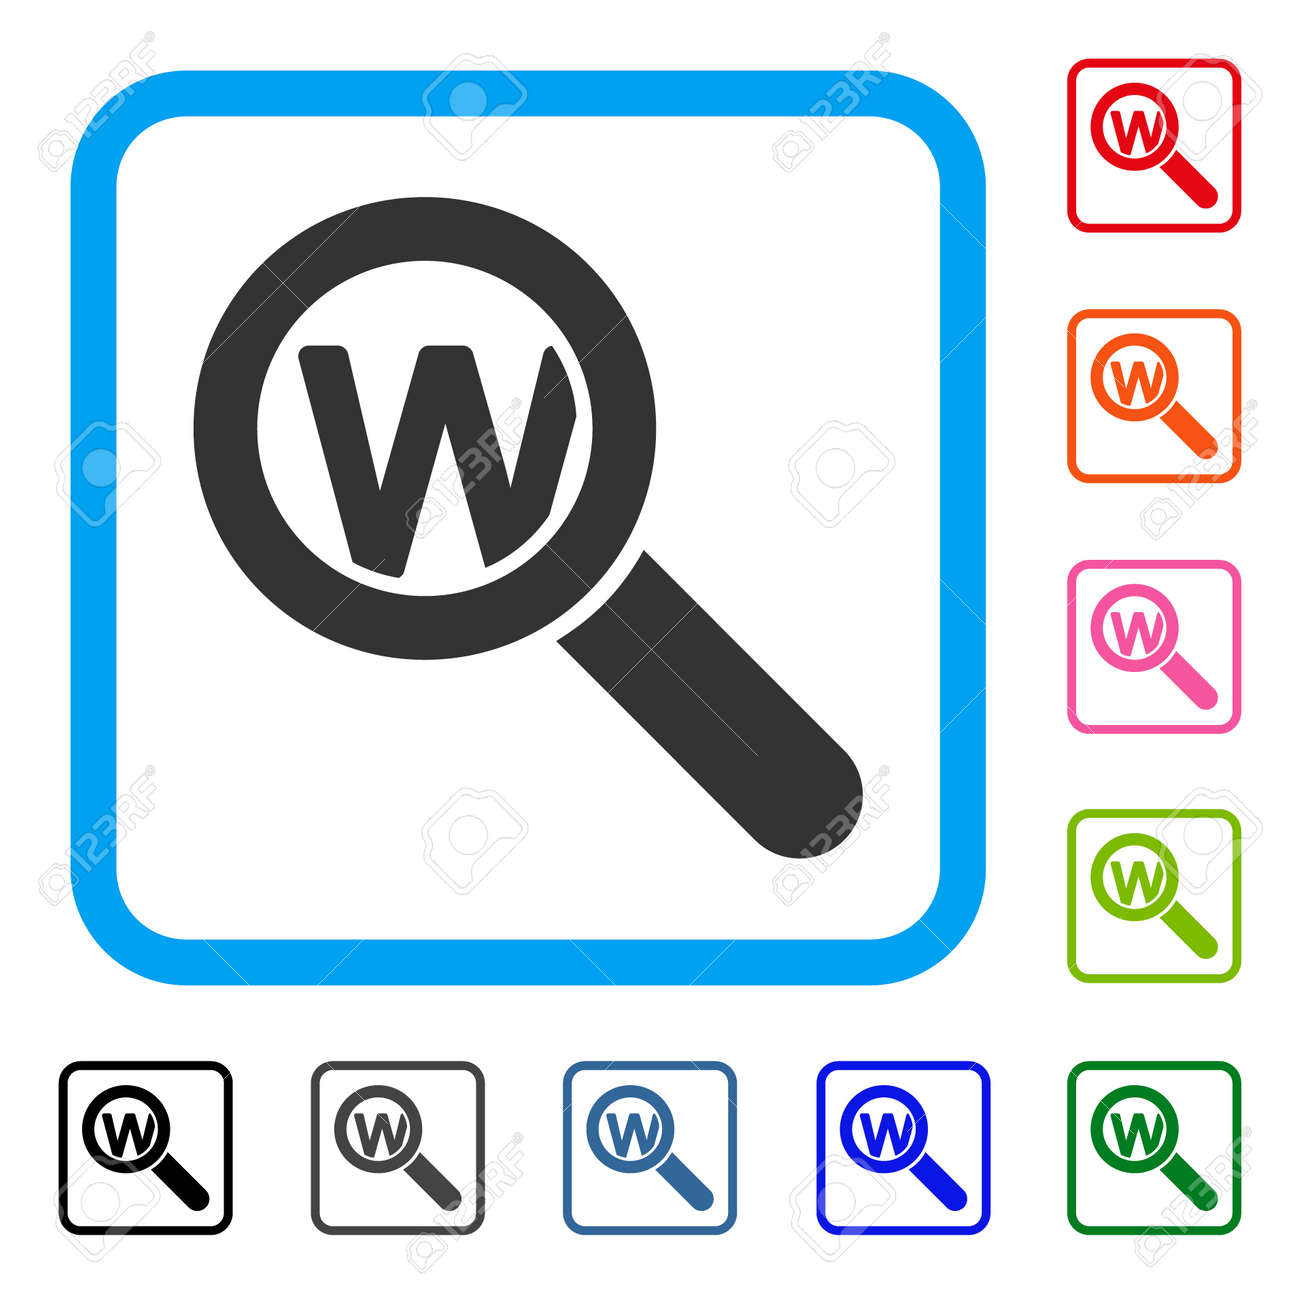 Search Word Icon Symbol In A Rounded Square Designed For Web